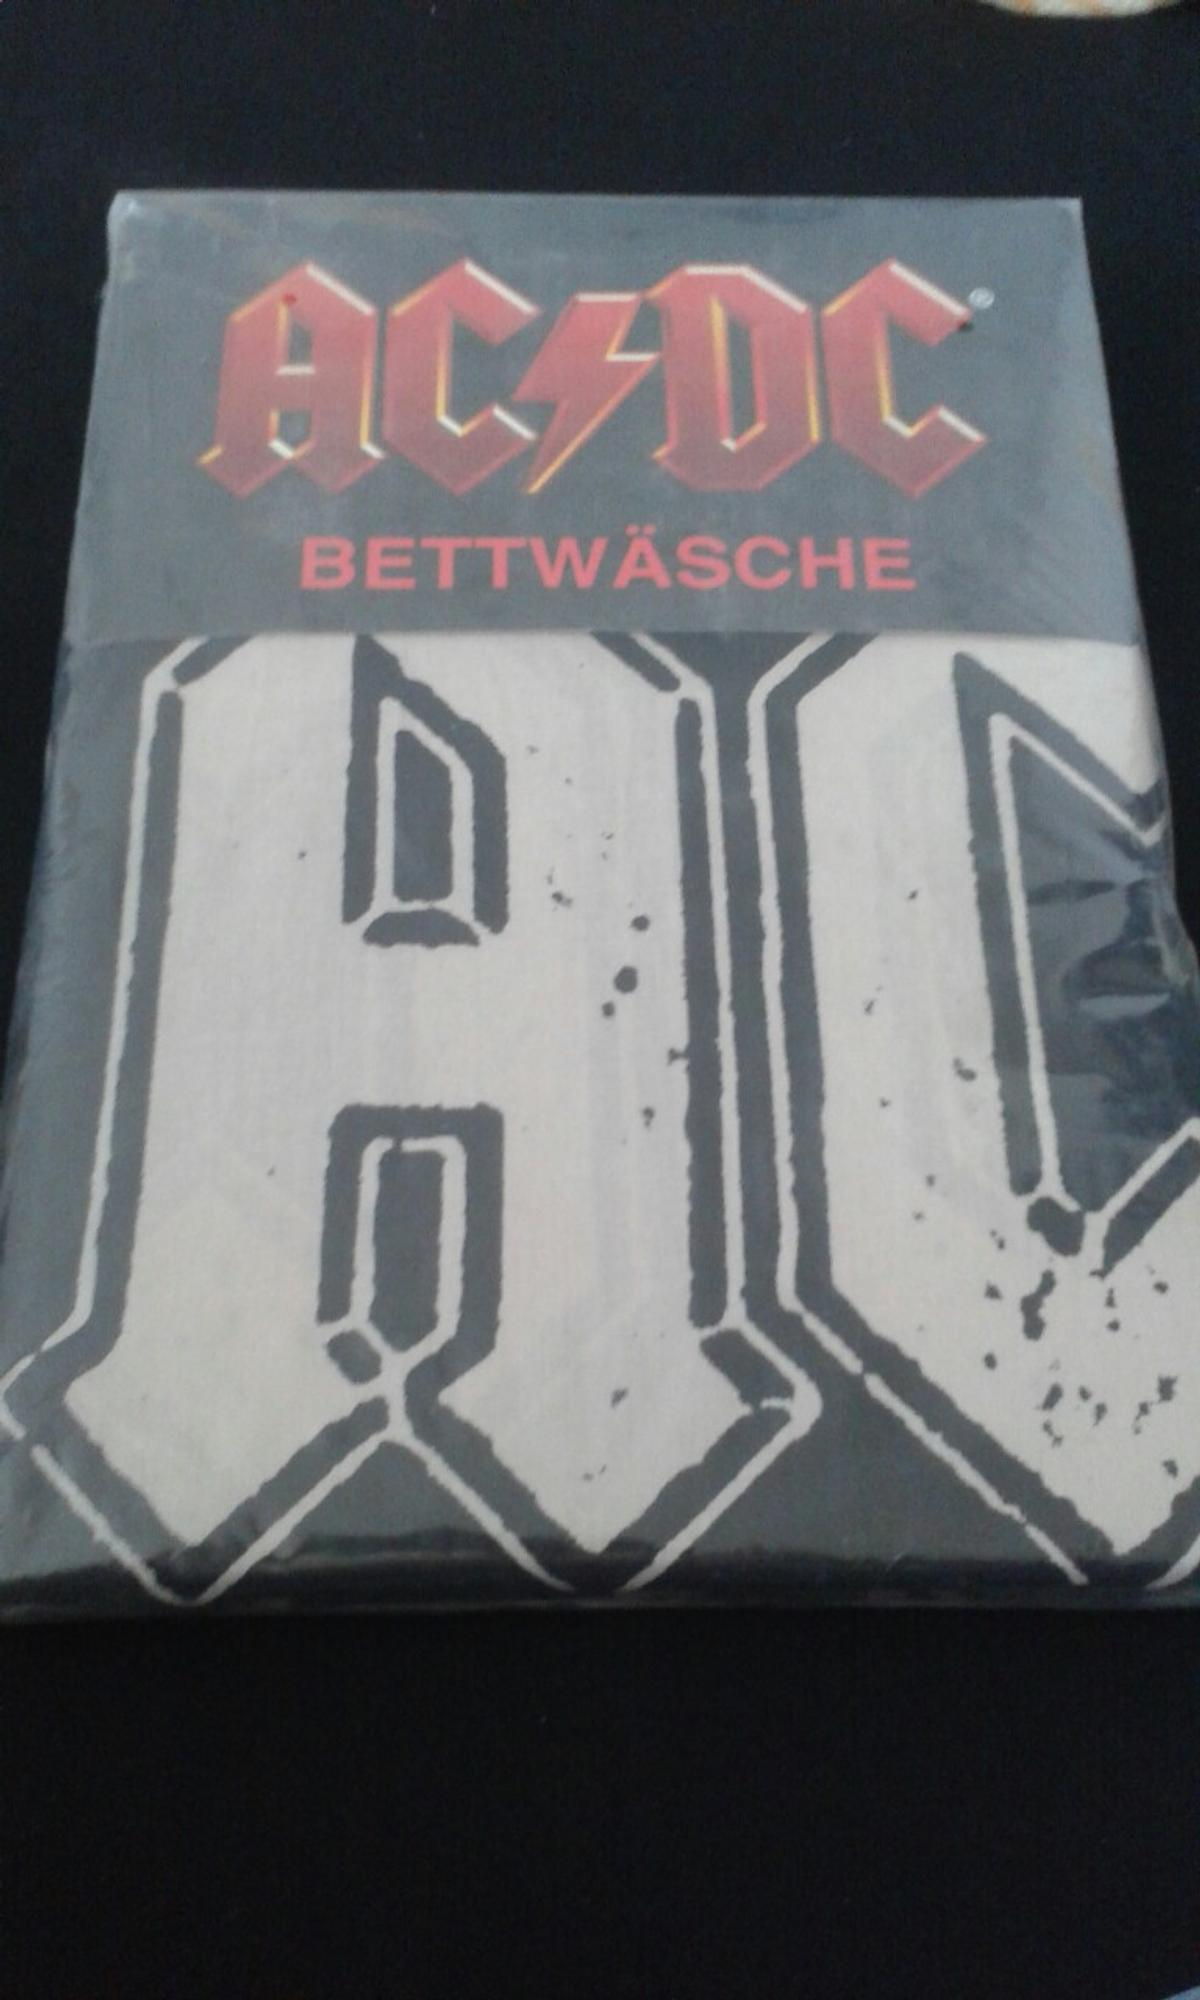 Acdc Bettwäsche Original Verpackt In 30173 Hannover For 2500 For